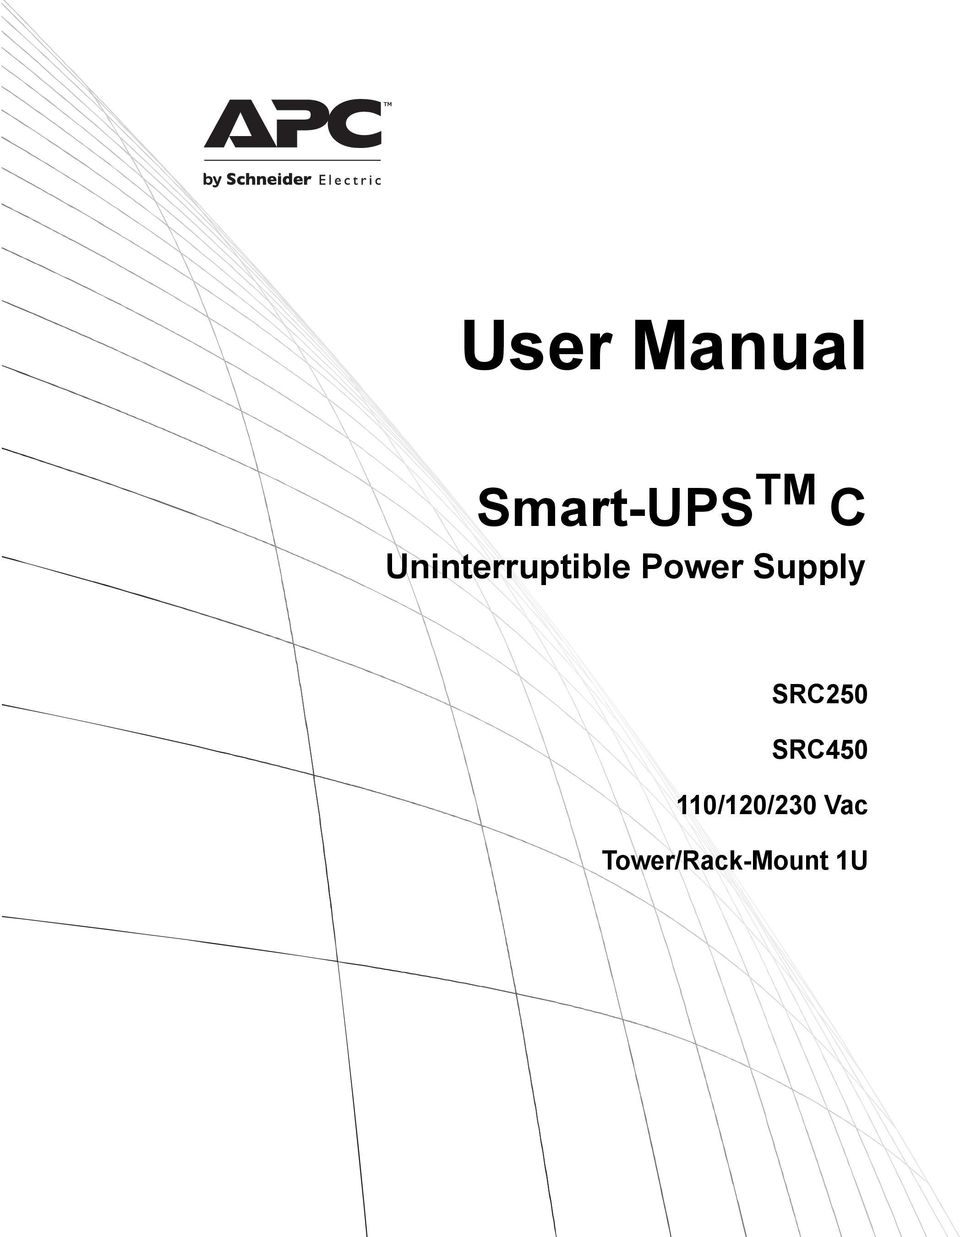 User Manual. Smart-UPS TM C. Uninterruptible Power Supply